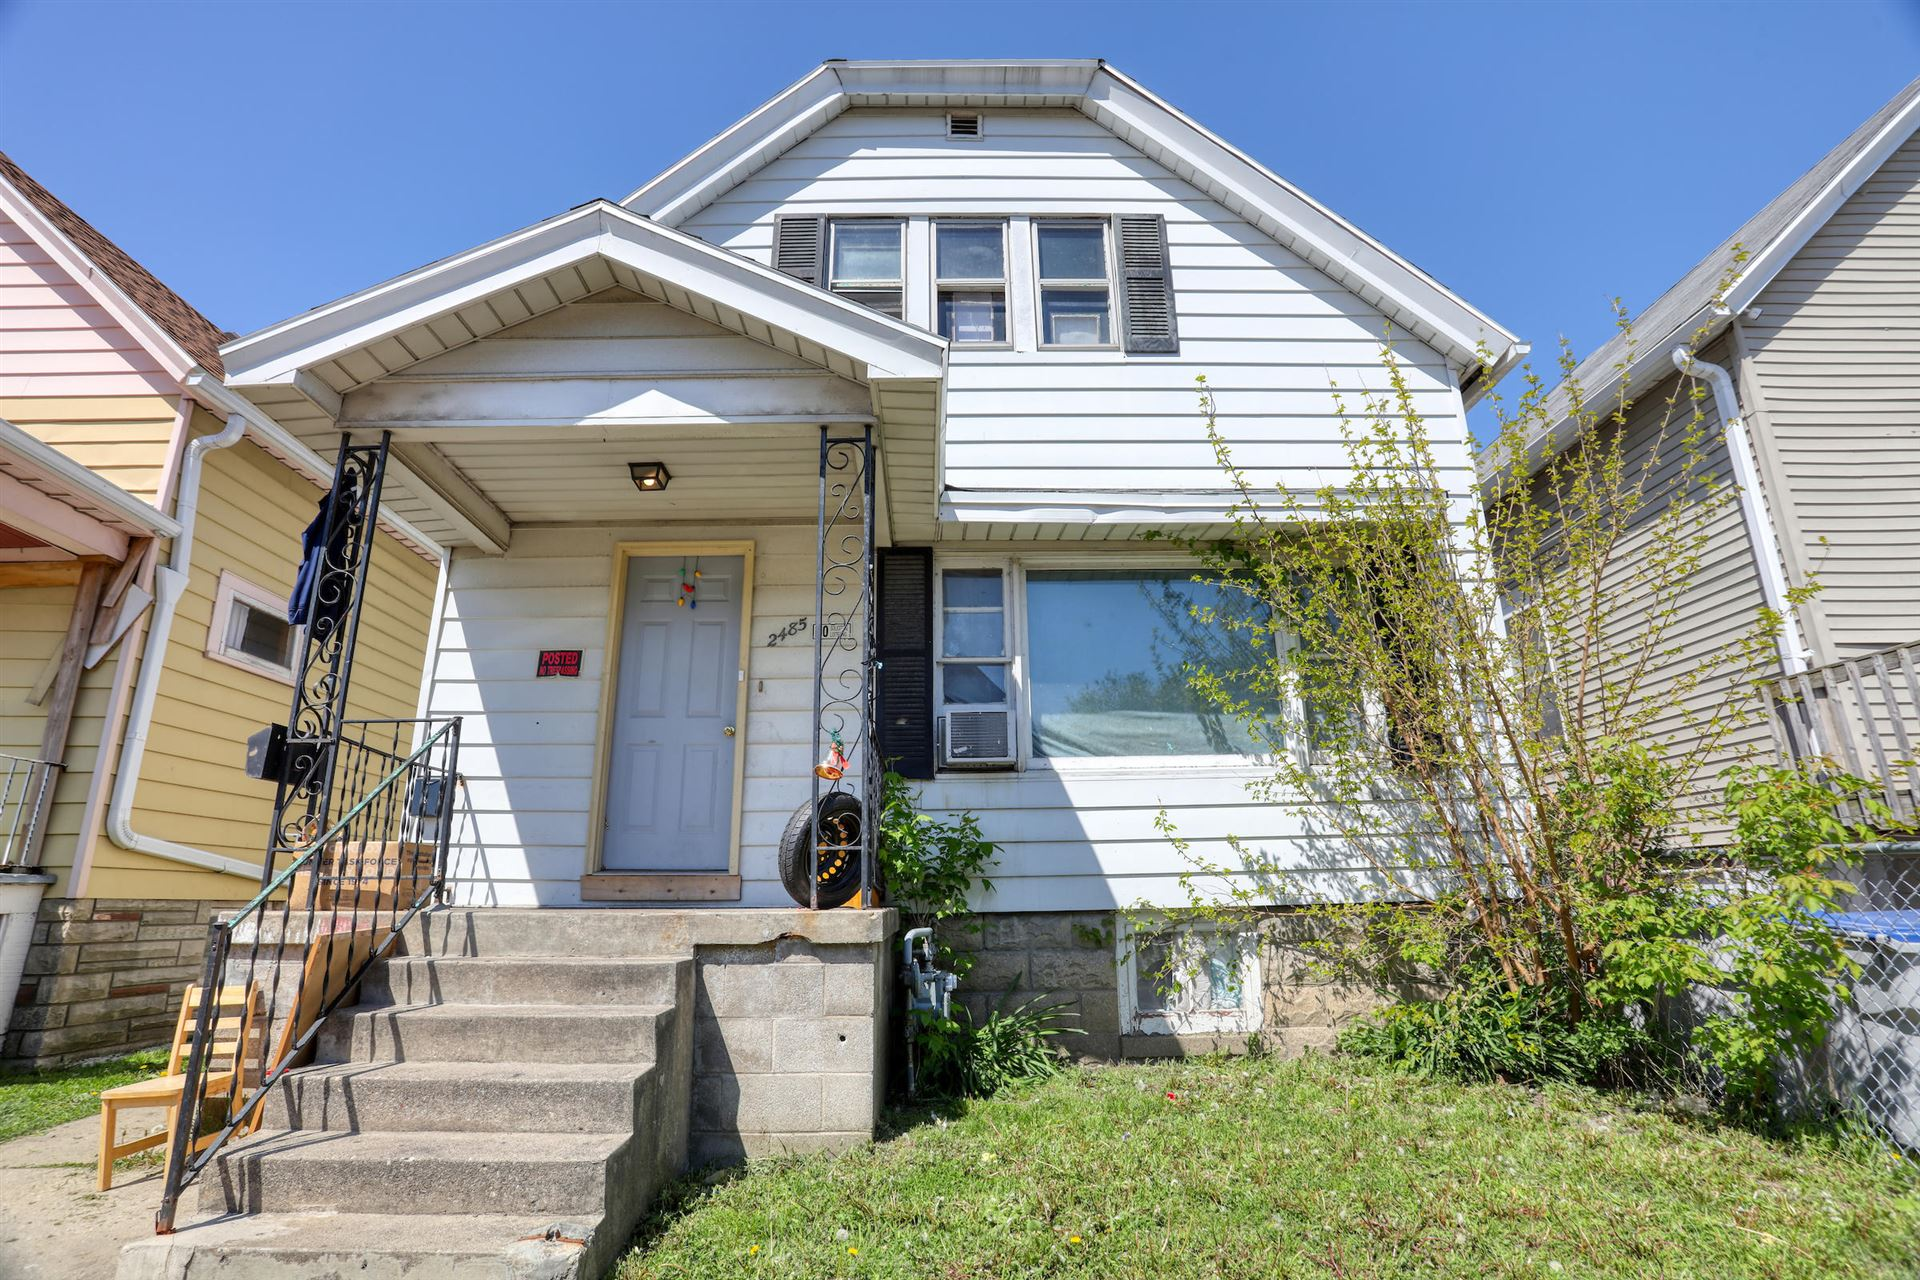 2485 S 5th Pl #2485A, Milwaukee, WI 53207 - MLS#: 1740646